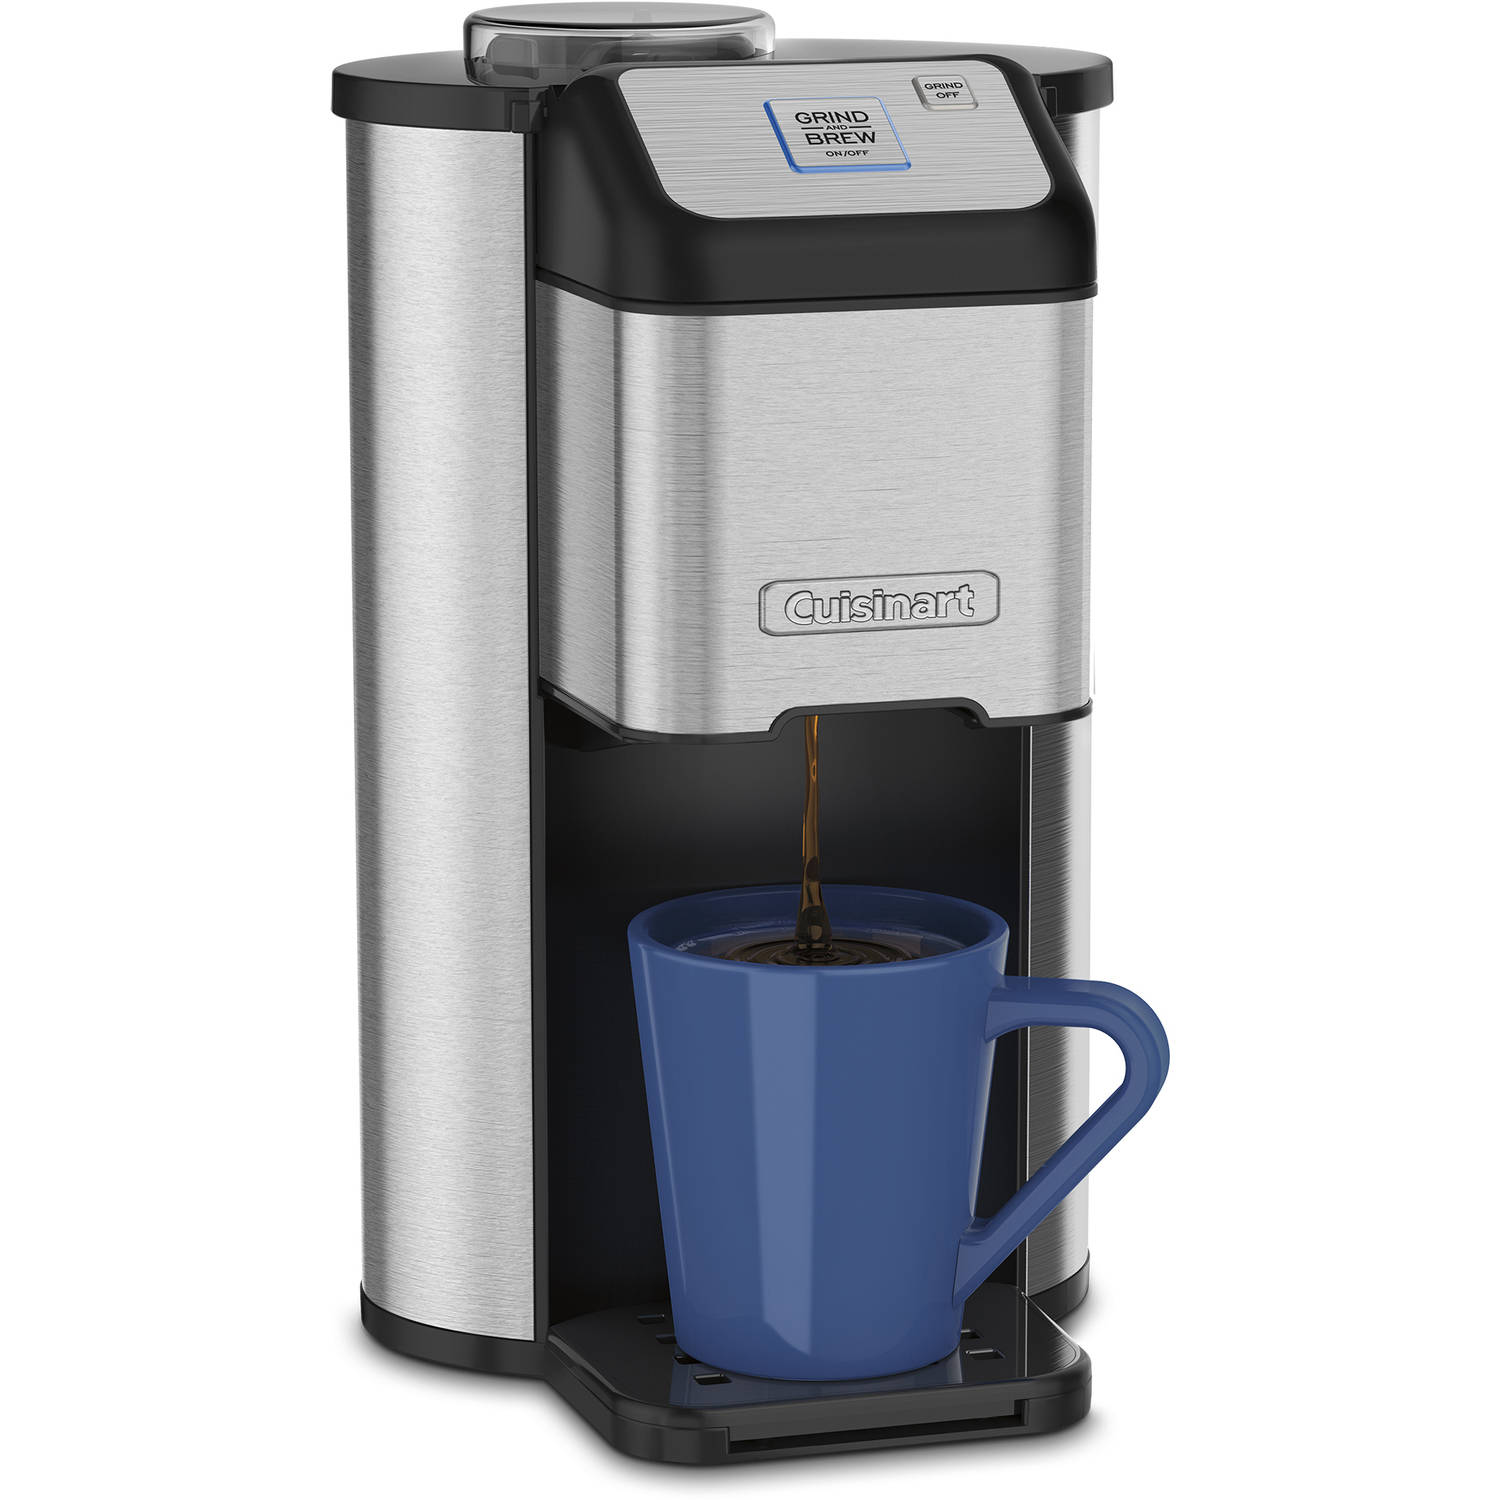 Single Serve Coffee Maker Cuisinart Grind & Brew 1 Cup Coffeemaker with Grinder